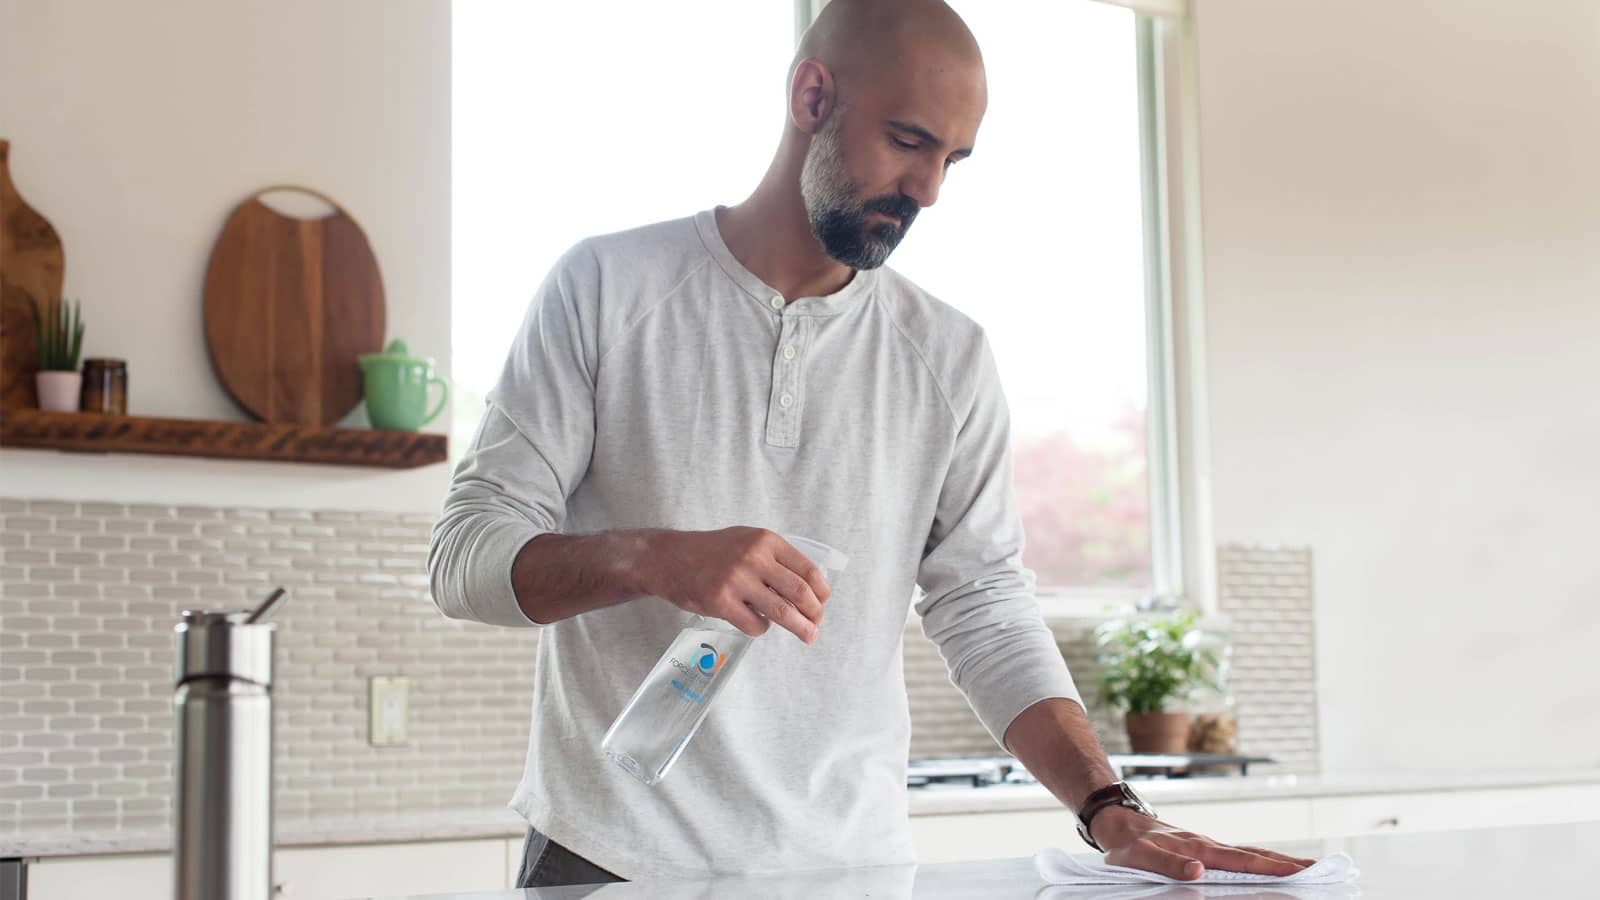 Asthma and allergy cleaning tips